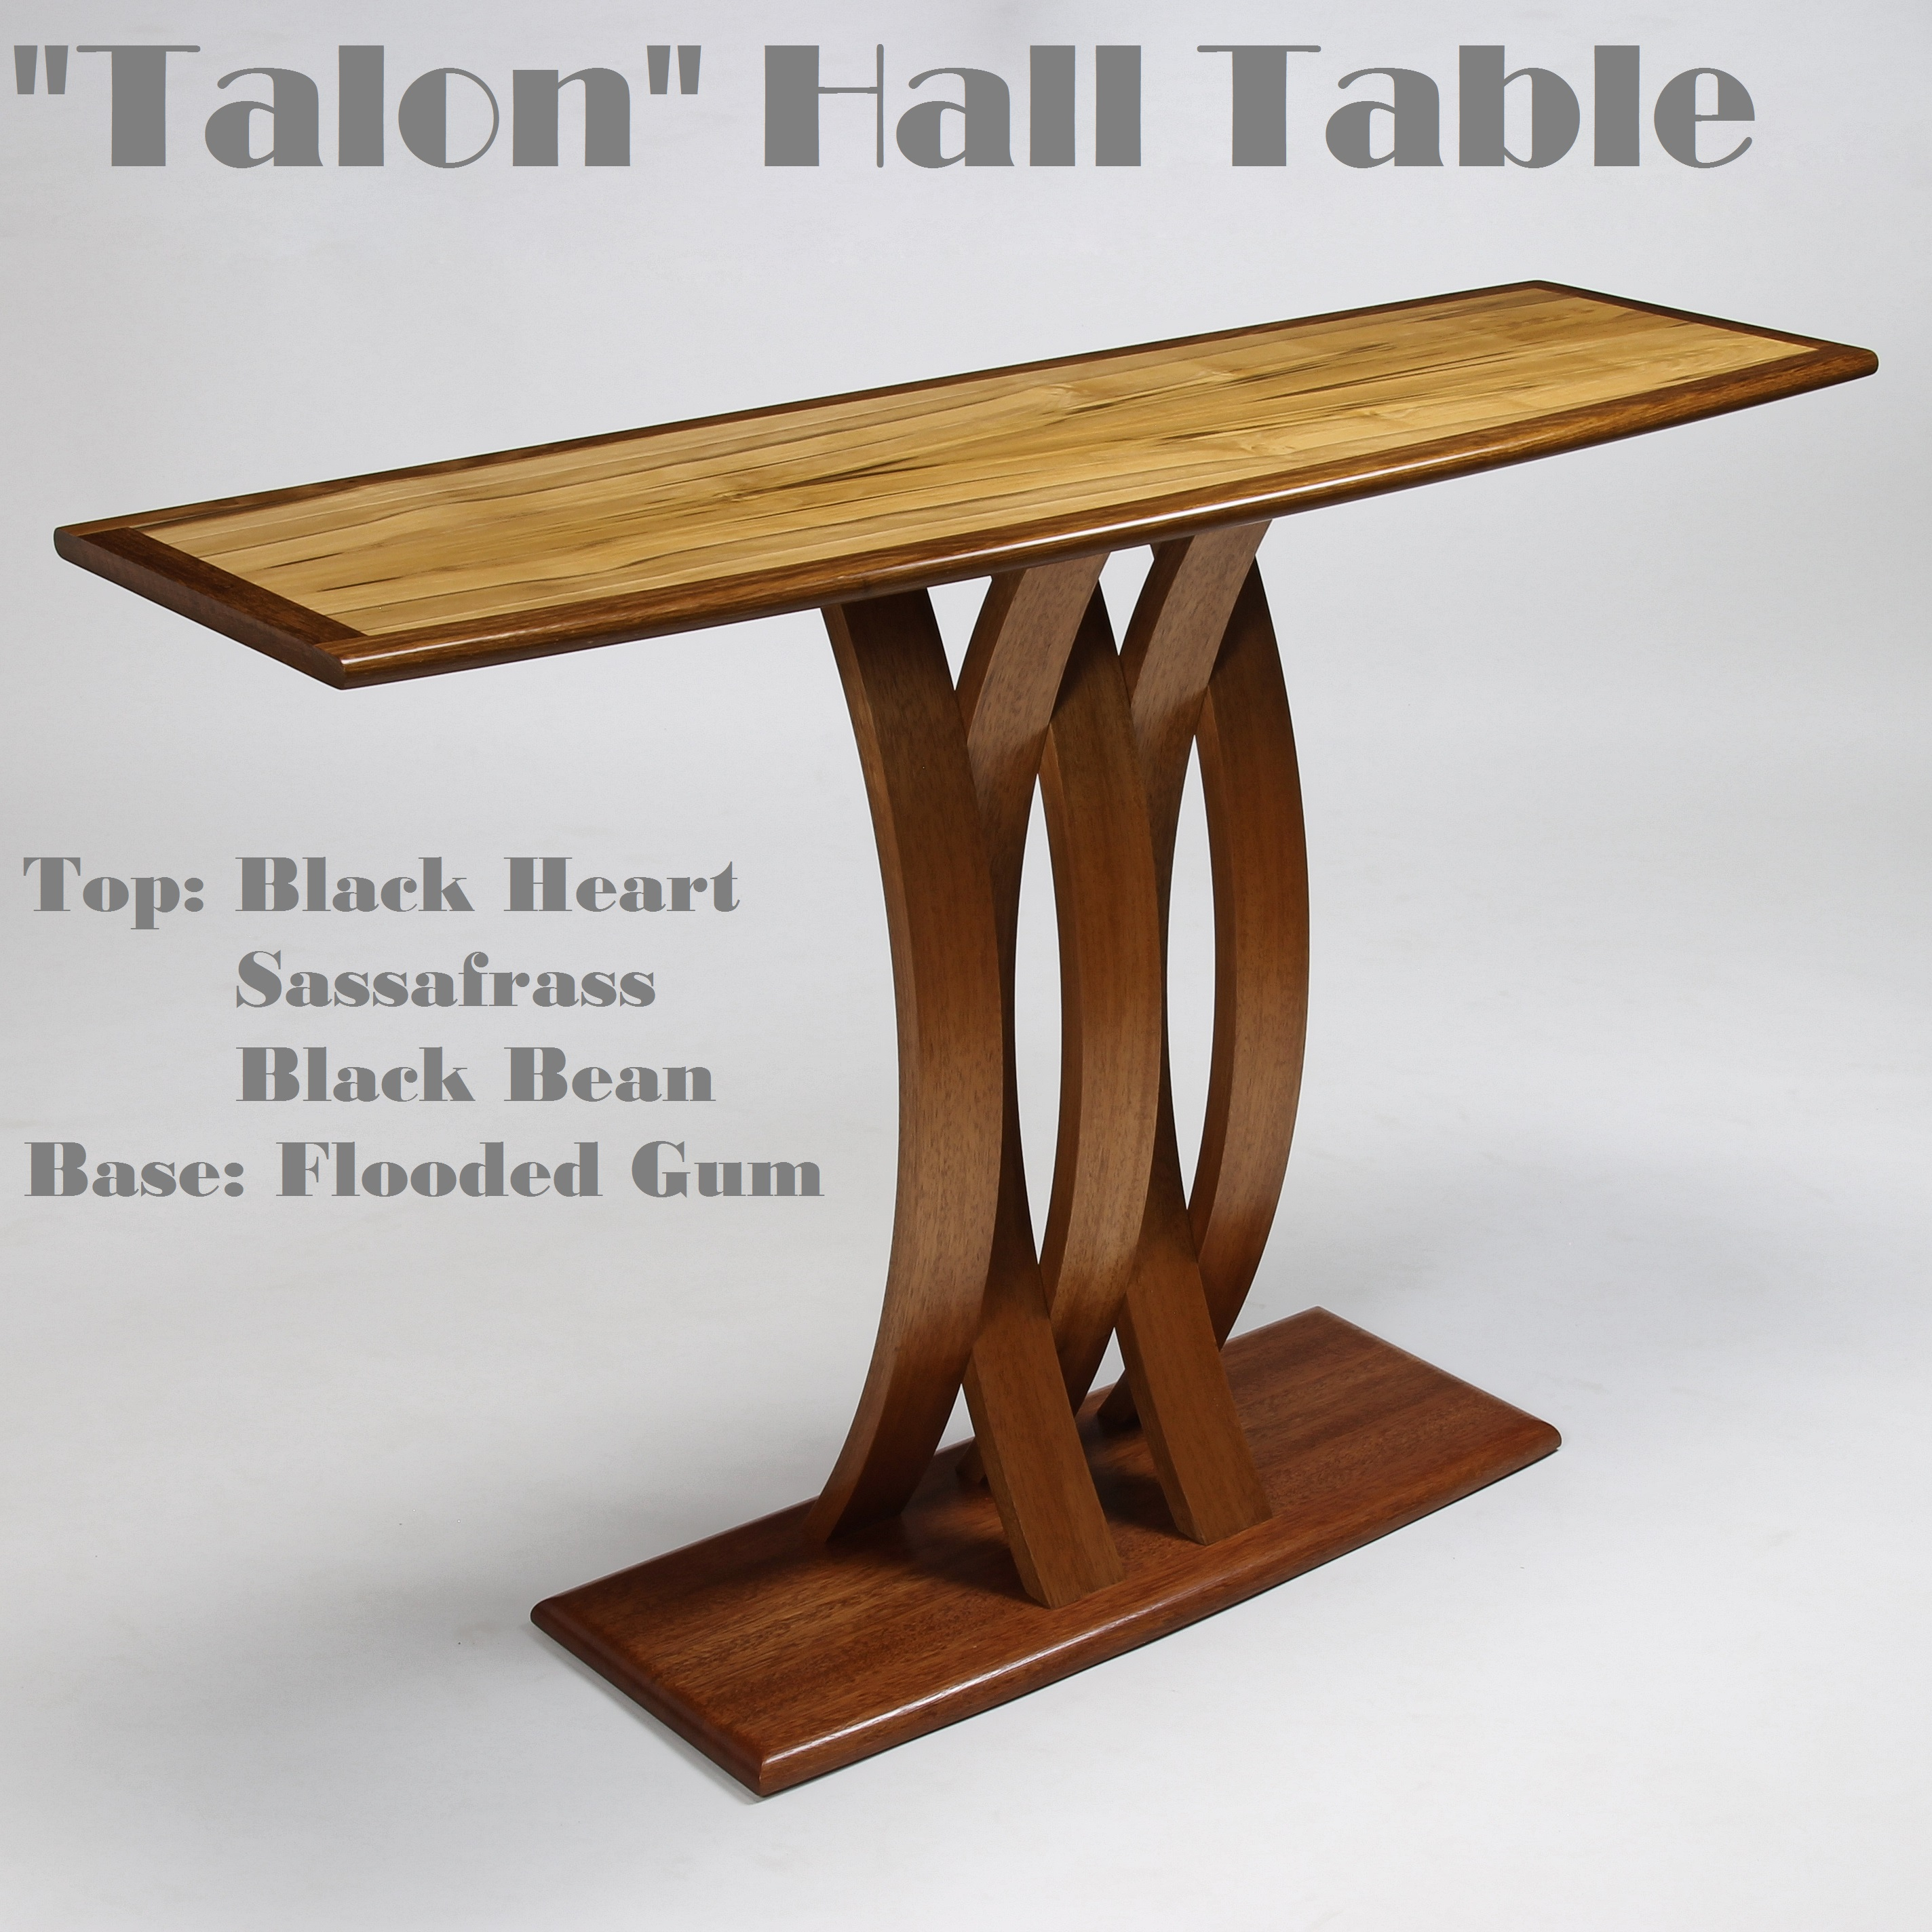 Talon Hall Table Website 1